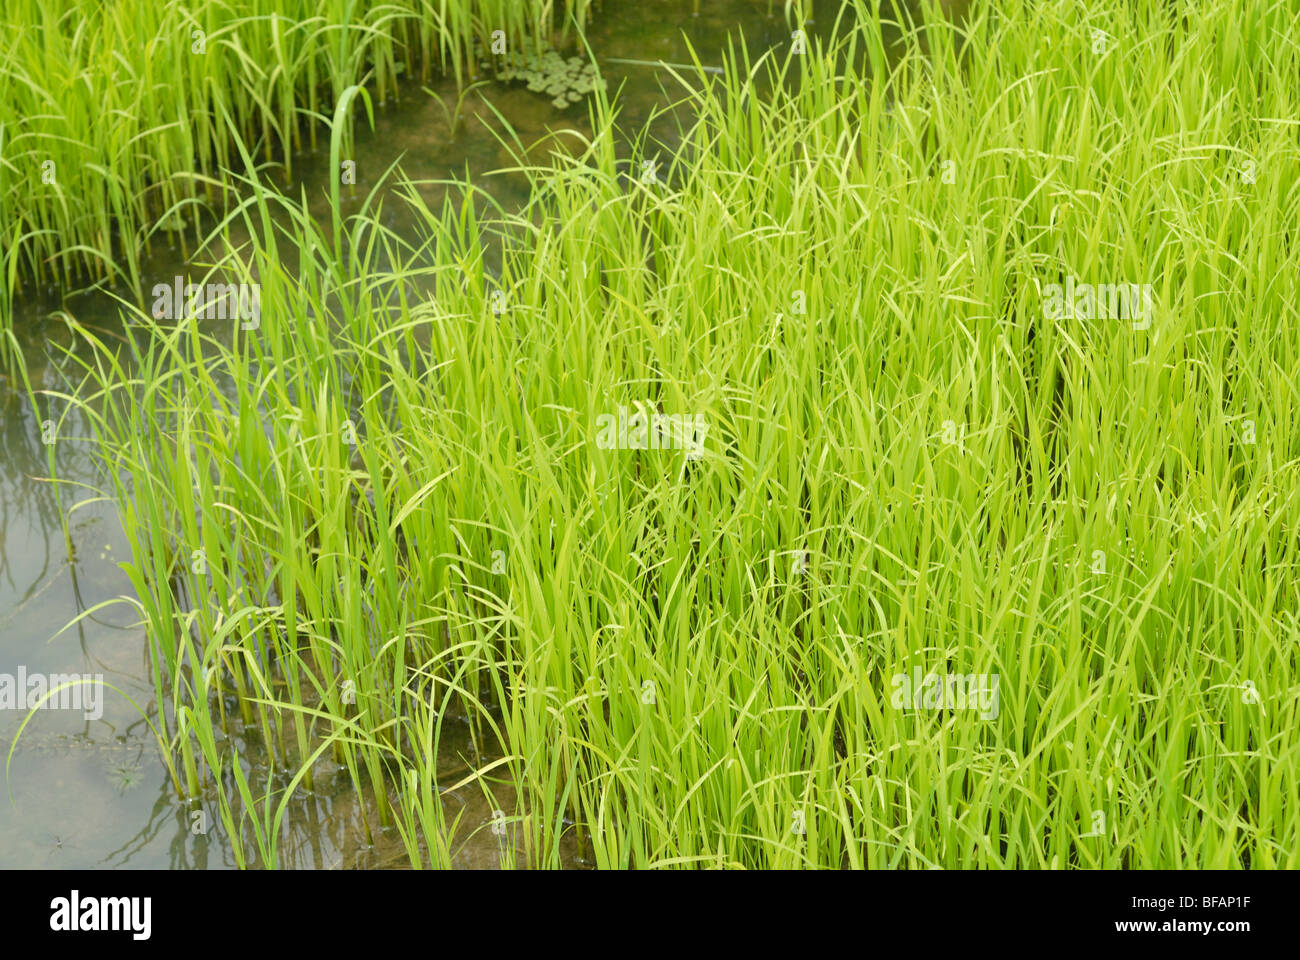 Rice field paddy field flooded arable land for growing rice. Green Growing rice - Stock Image